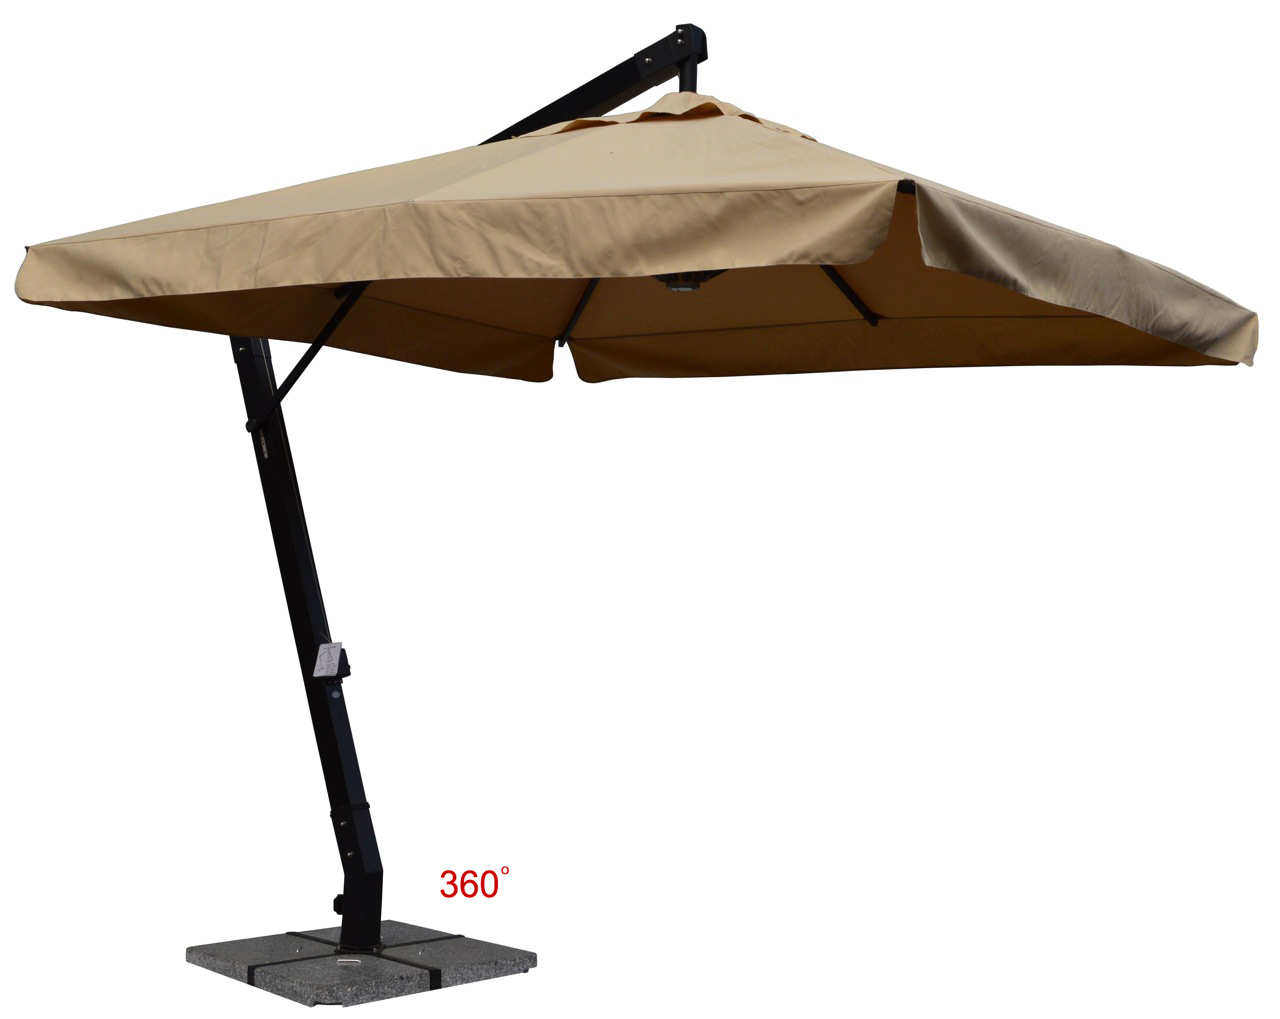 Jaavan Outdoor Hanging Commercial Single Layer Umbrella